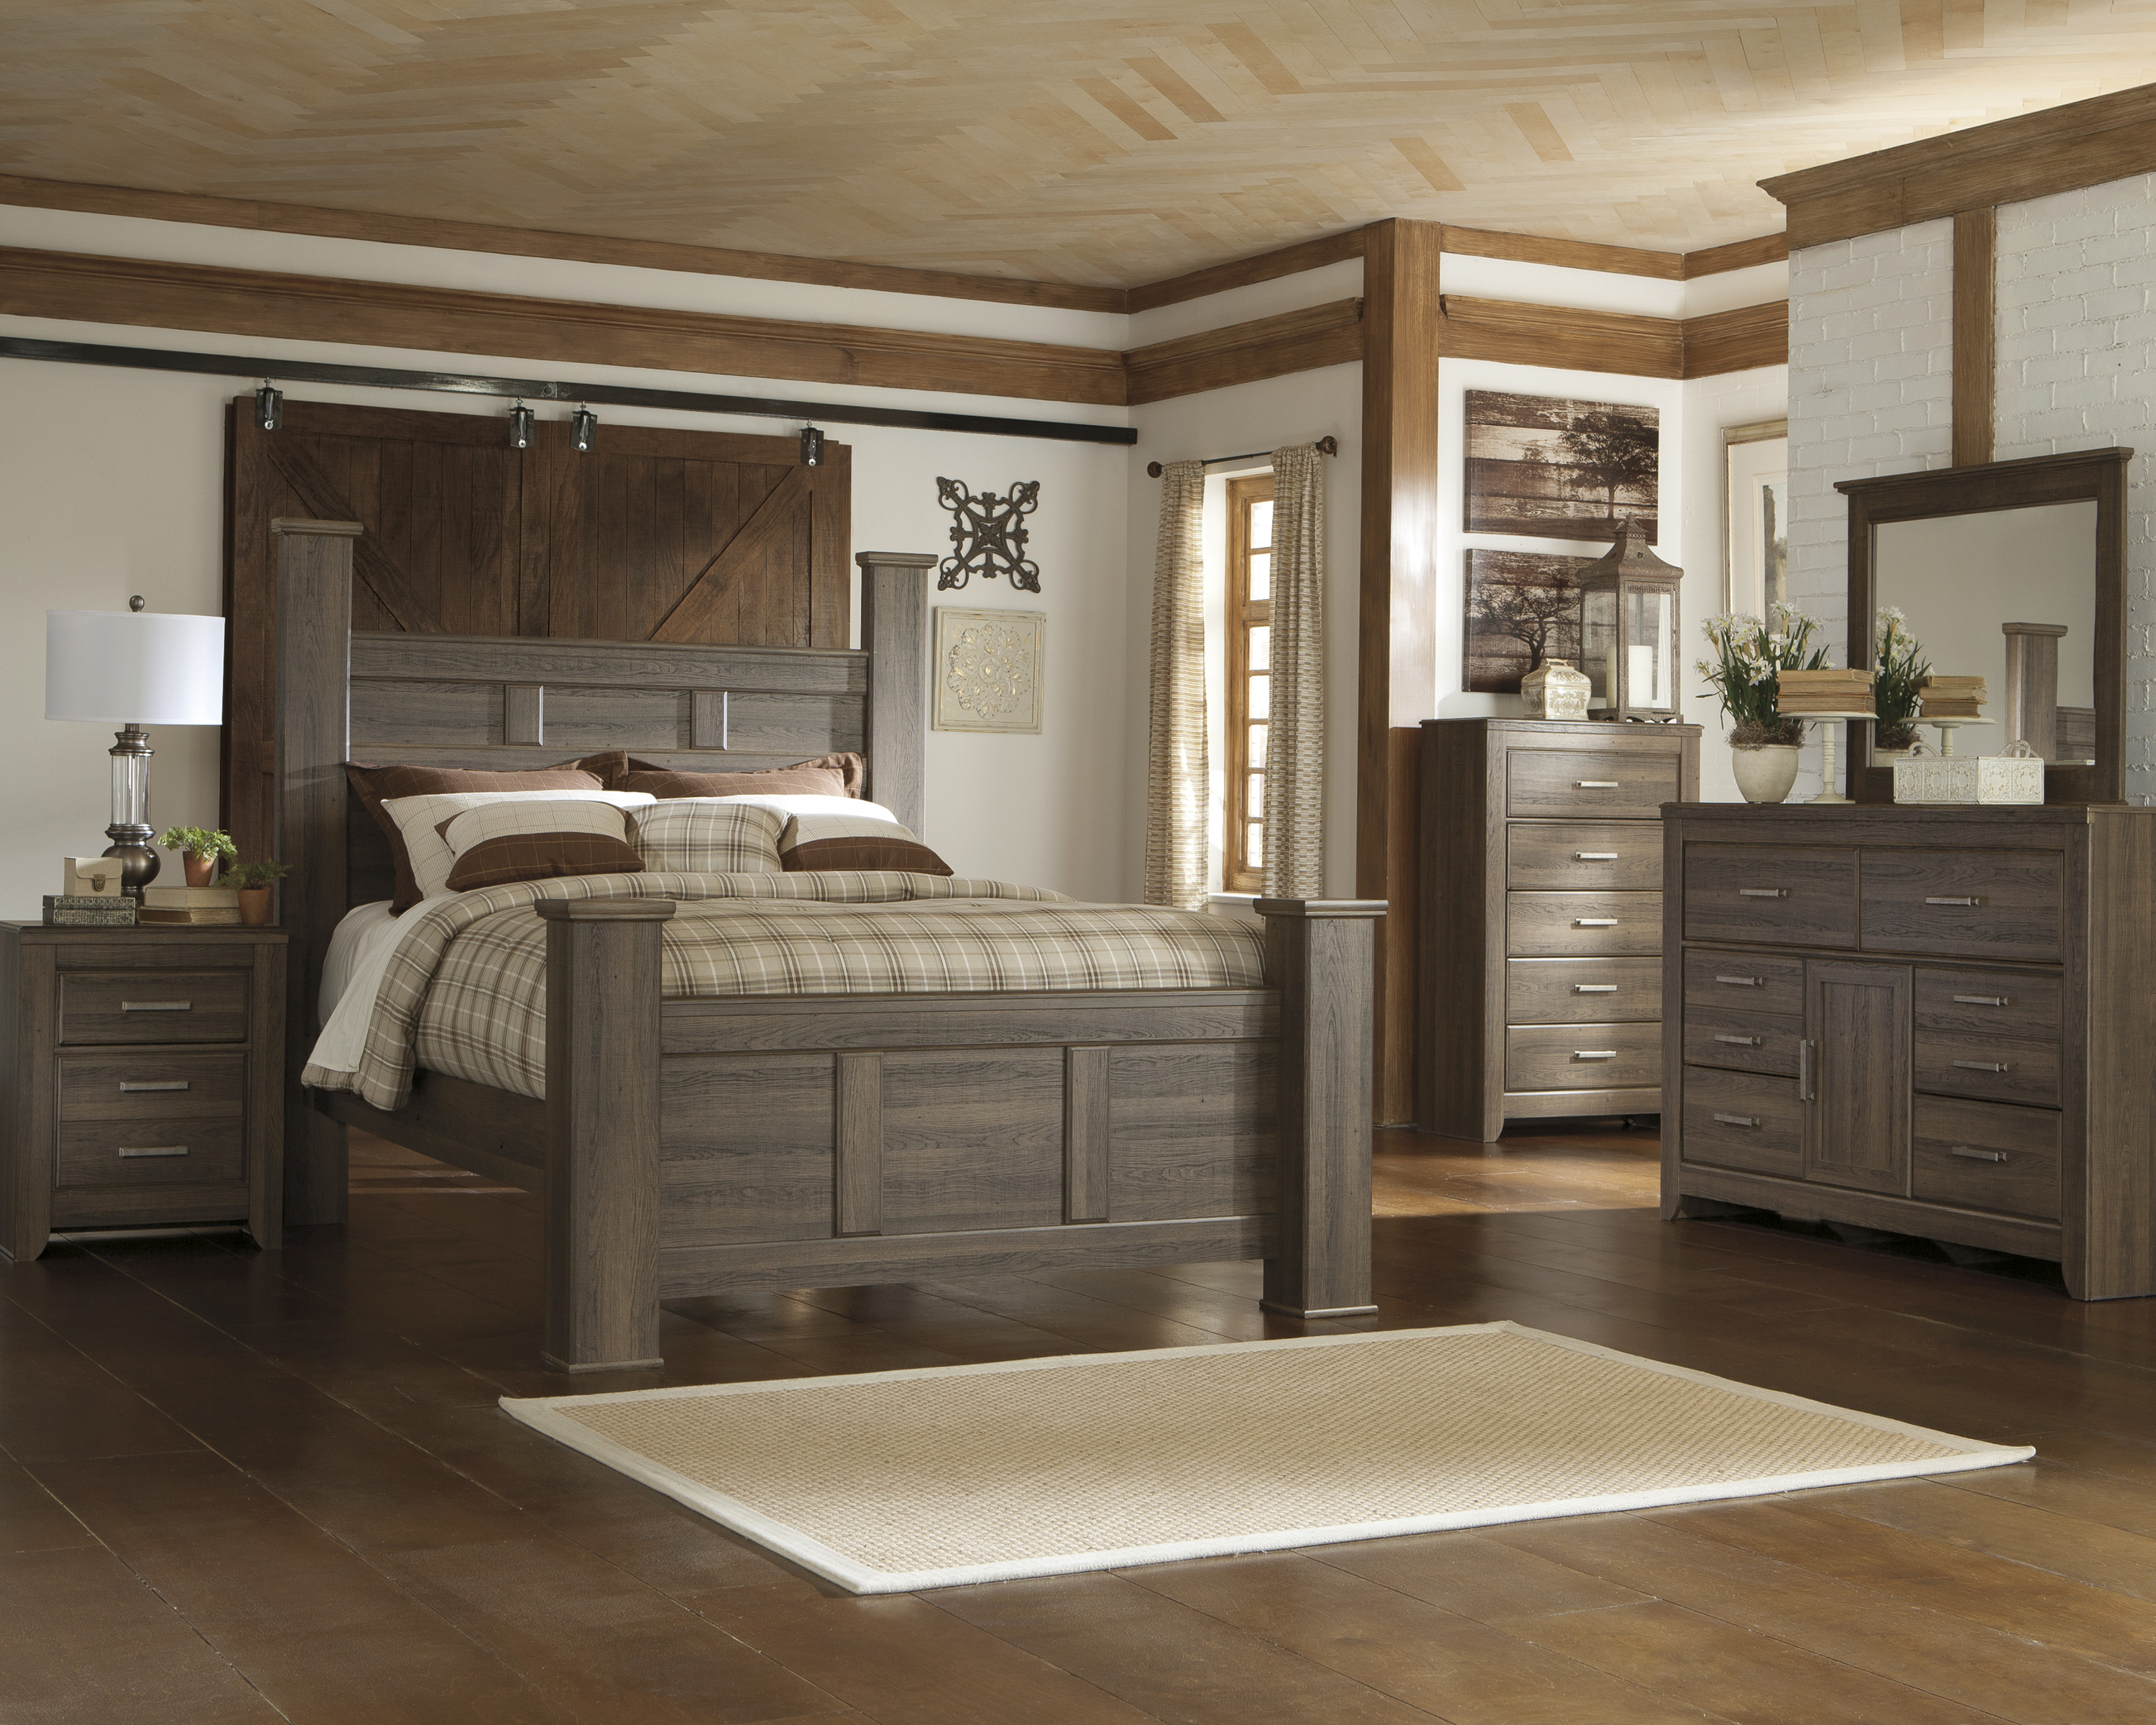 Large Modular Interior Adult Bedroom Set